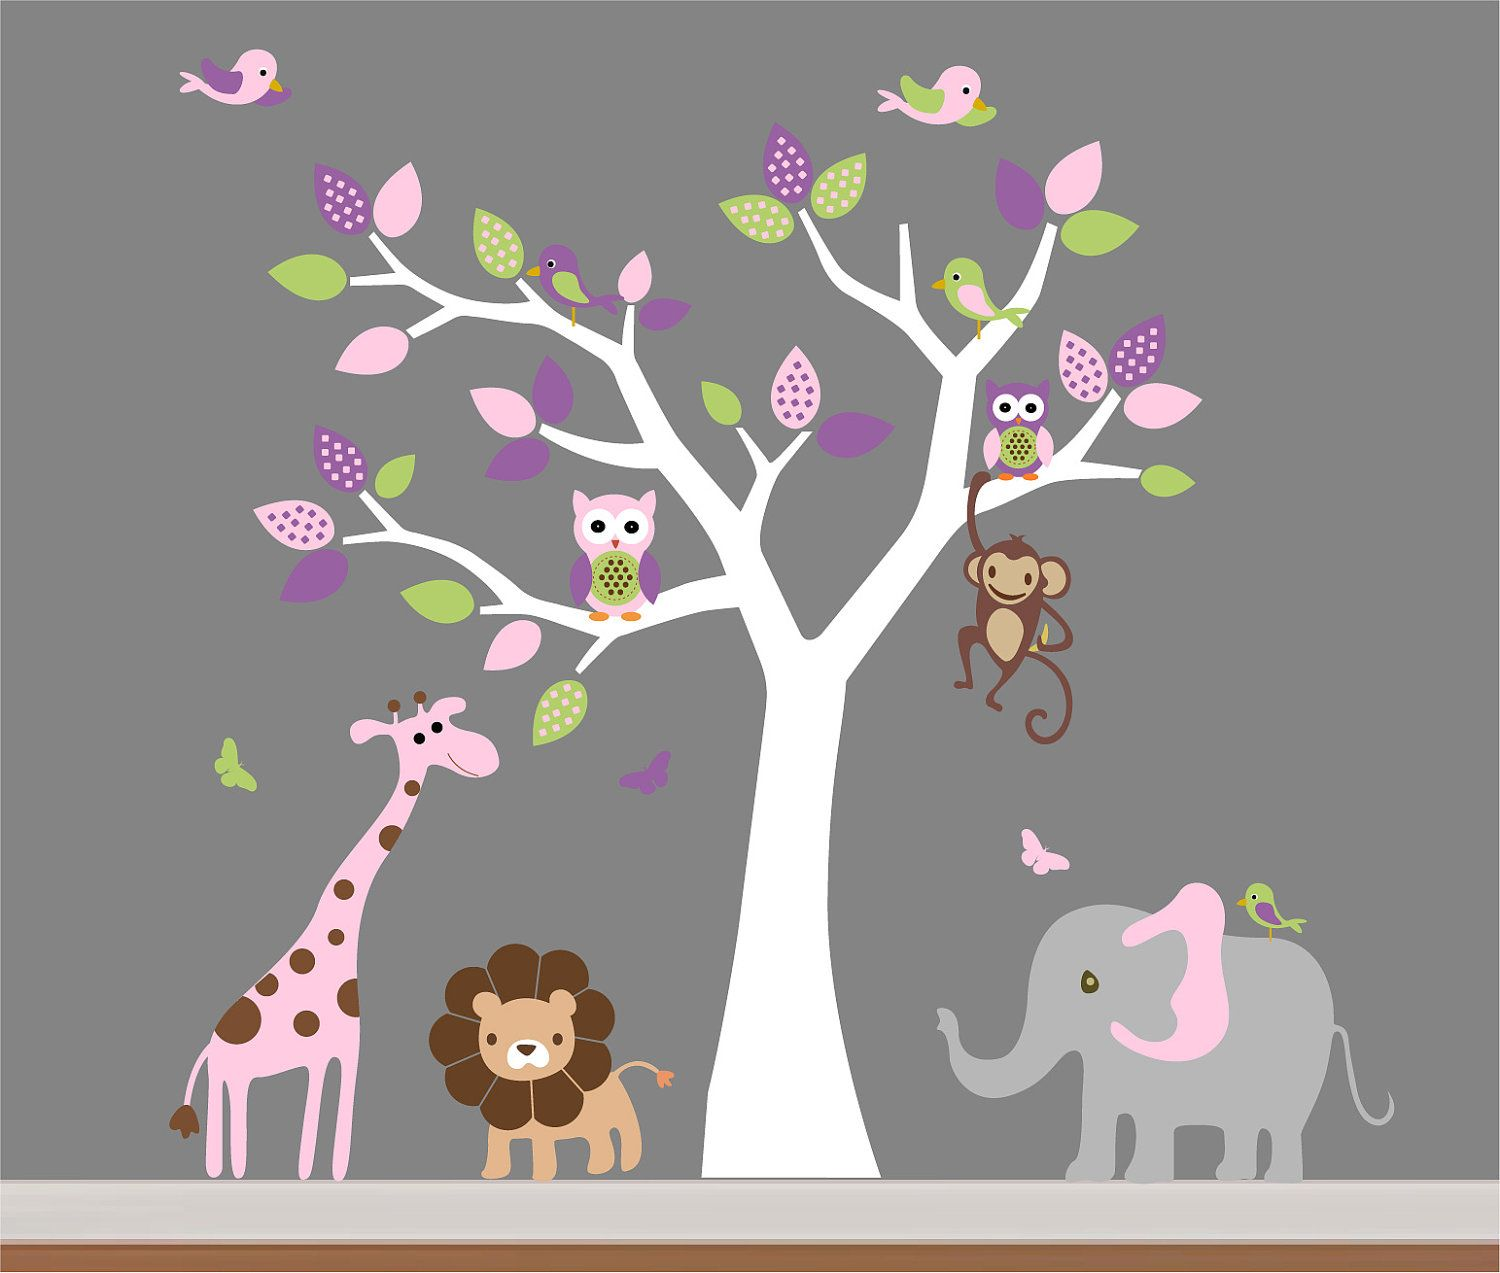 Kids room wall decor stickers - Kids Bedroom Interior Cute Wild Animals Printed Kids Room Wall Decal With Grey Wall Painted Inspiring Ideas Sweet Wall Stickers For Bedrooms Inspiring